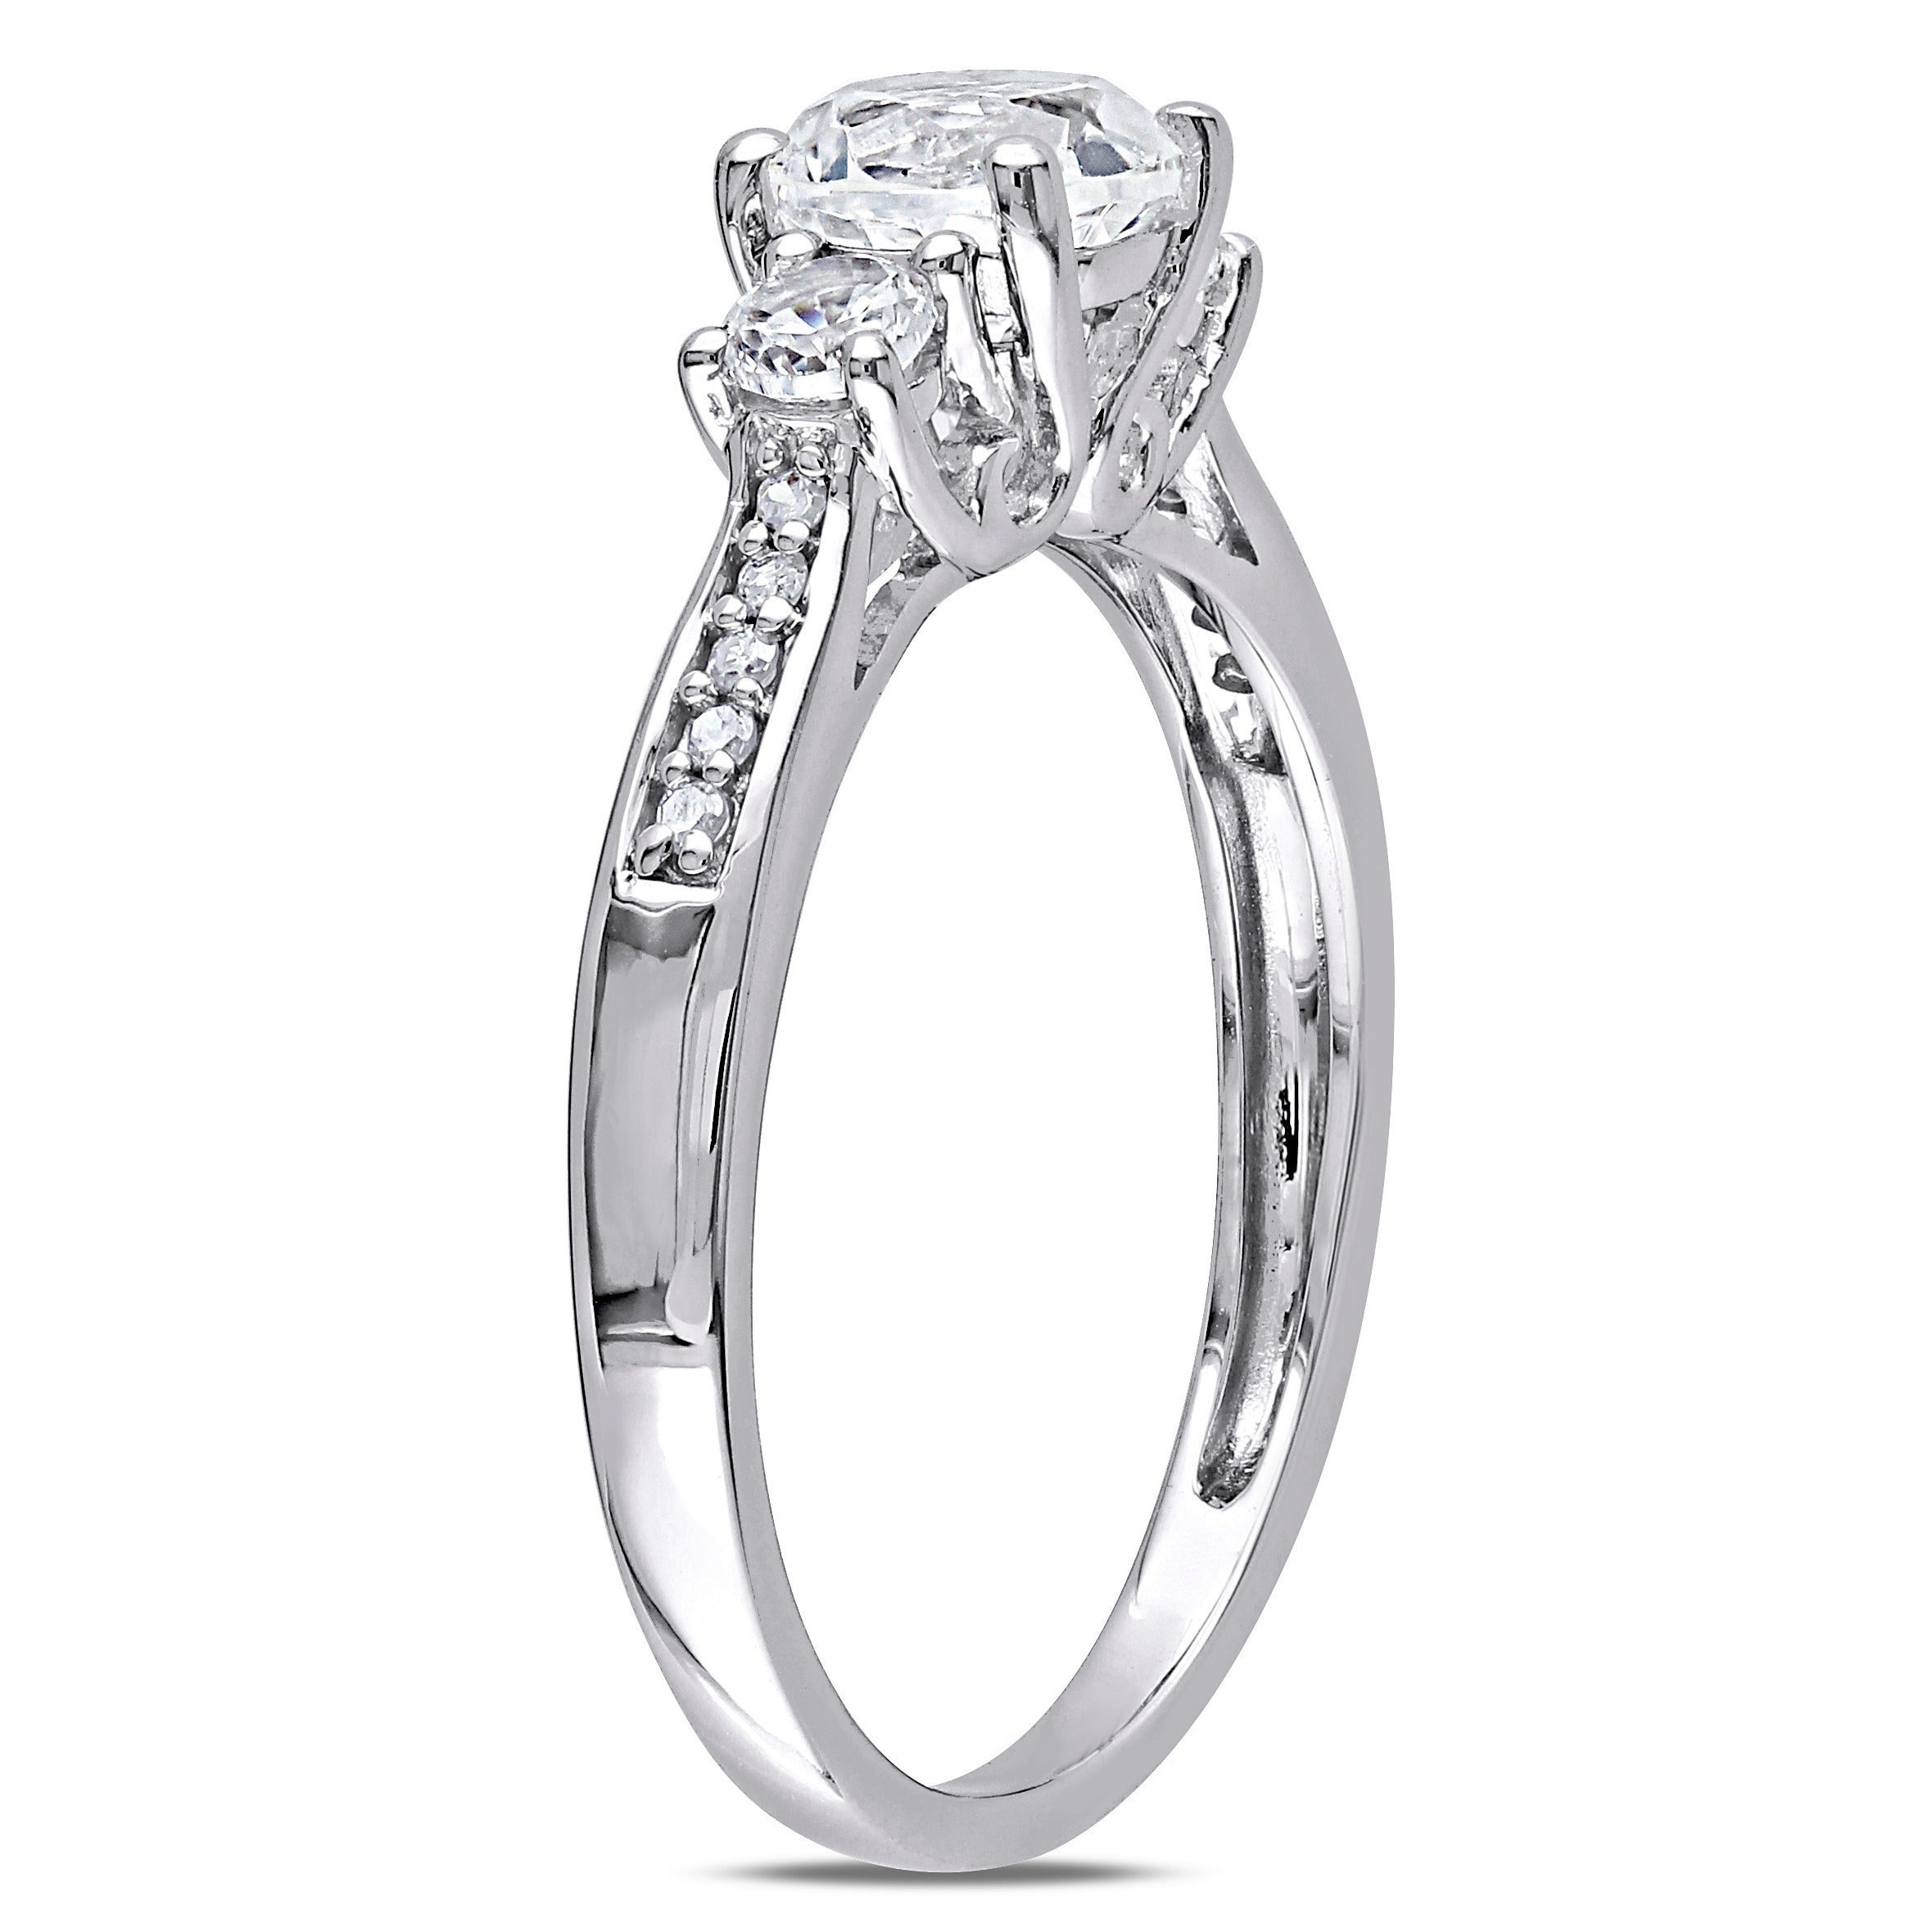 hand kirk miadonna stella to from collection engagement kara inspiration the various tiffany engraving ring wedding engraved ways do rings